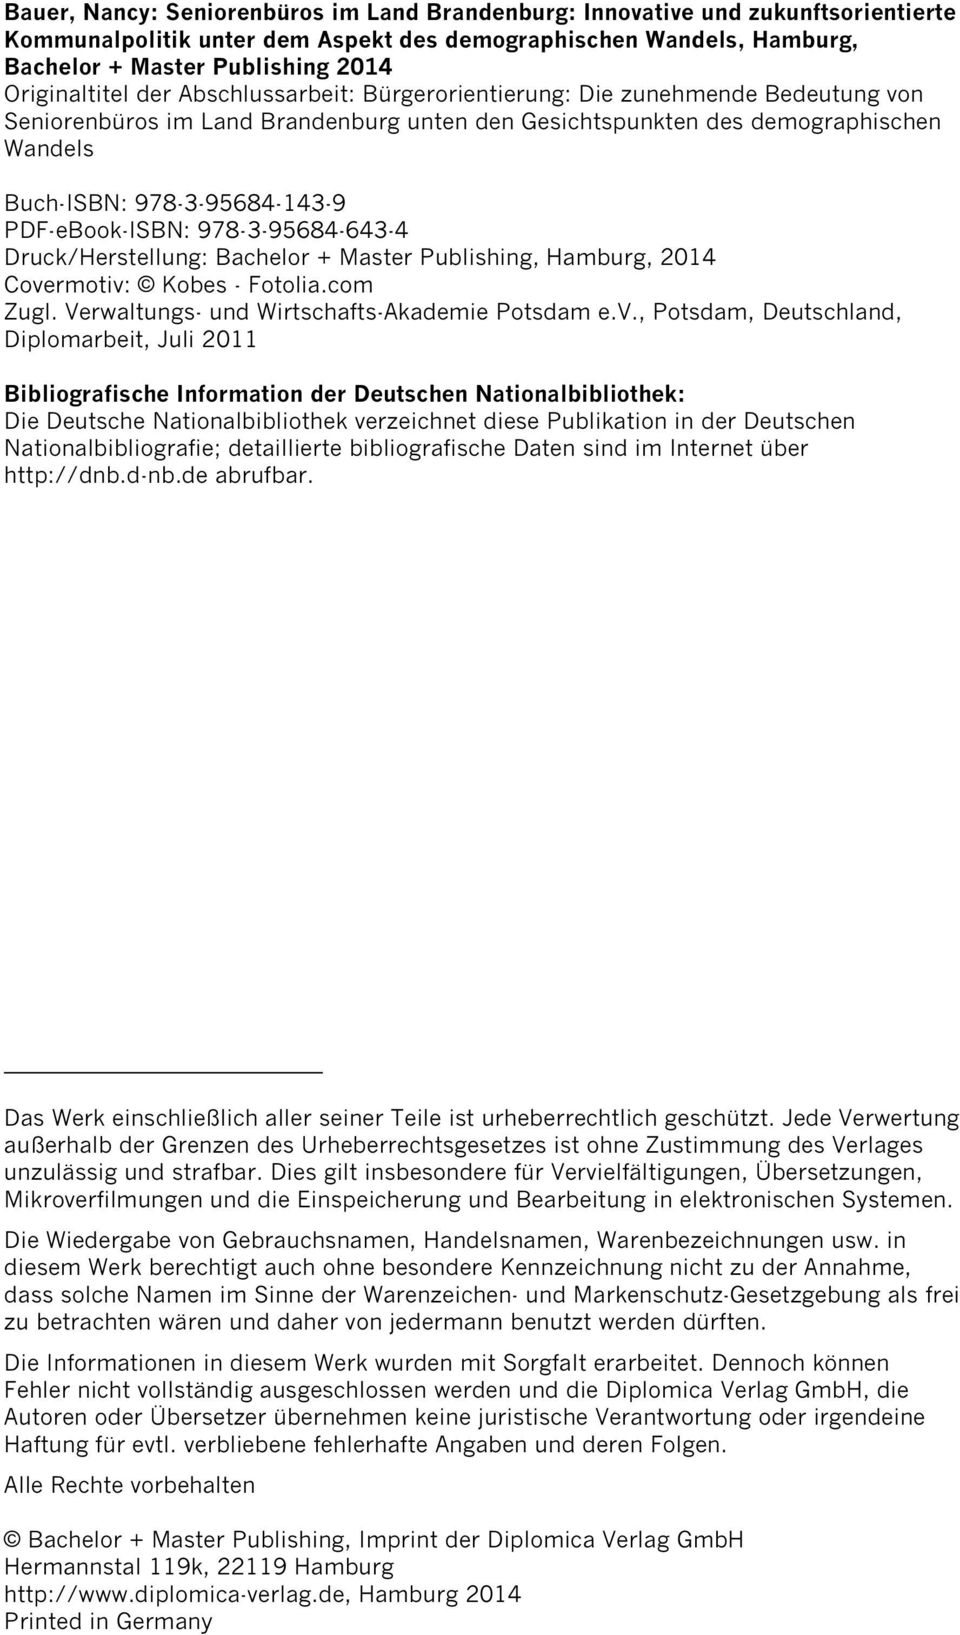 978-3-95684-143-9 PDF-eBook-ISBN: 978-3-95684-643-4 Druck/Herstellung: Bachelor + Master Publishing, Hamburg, 2014 Covermotiv: Kobes - Fotolia.com Zugl.